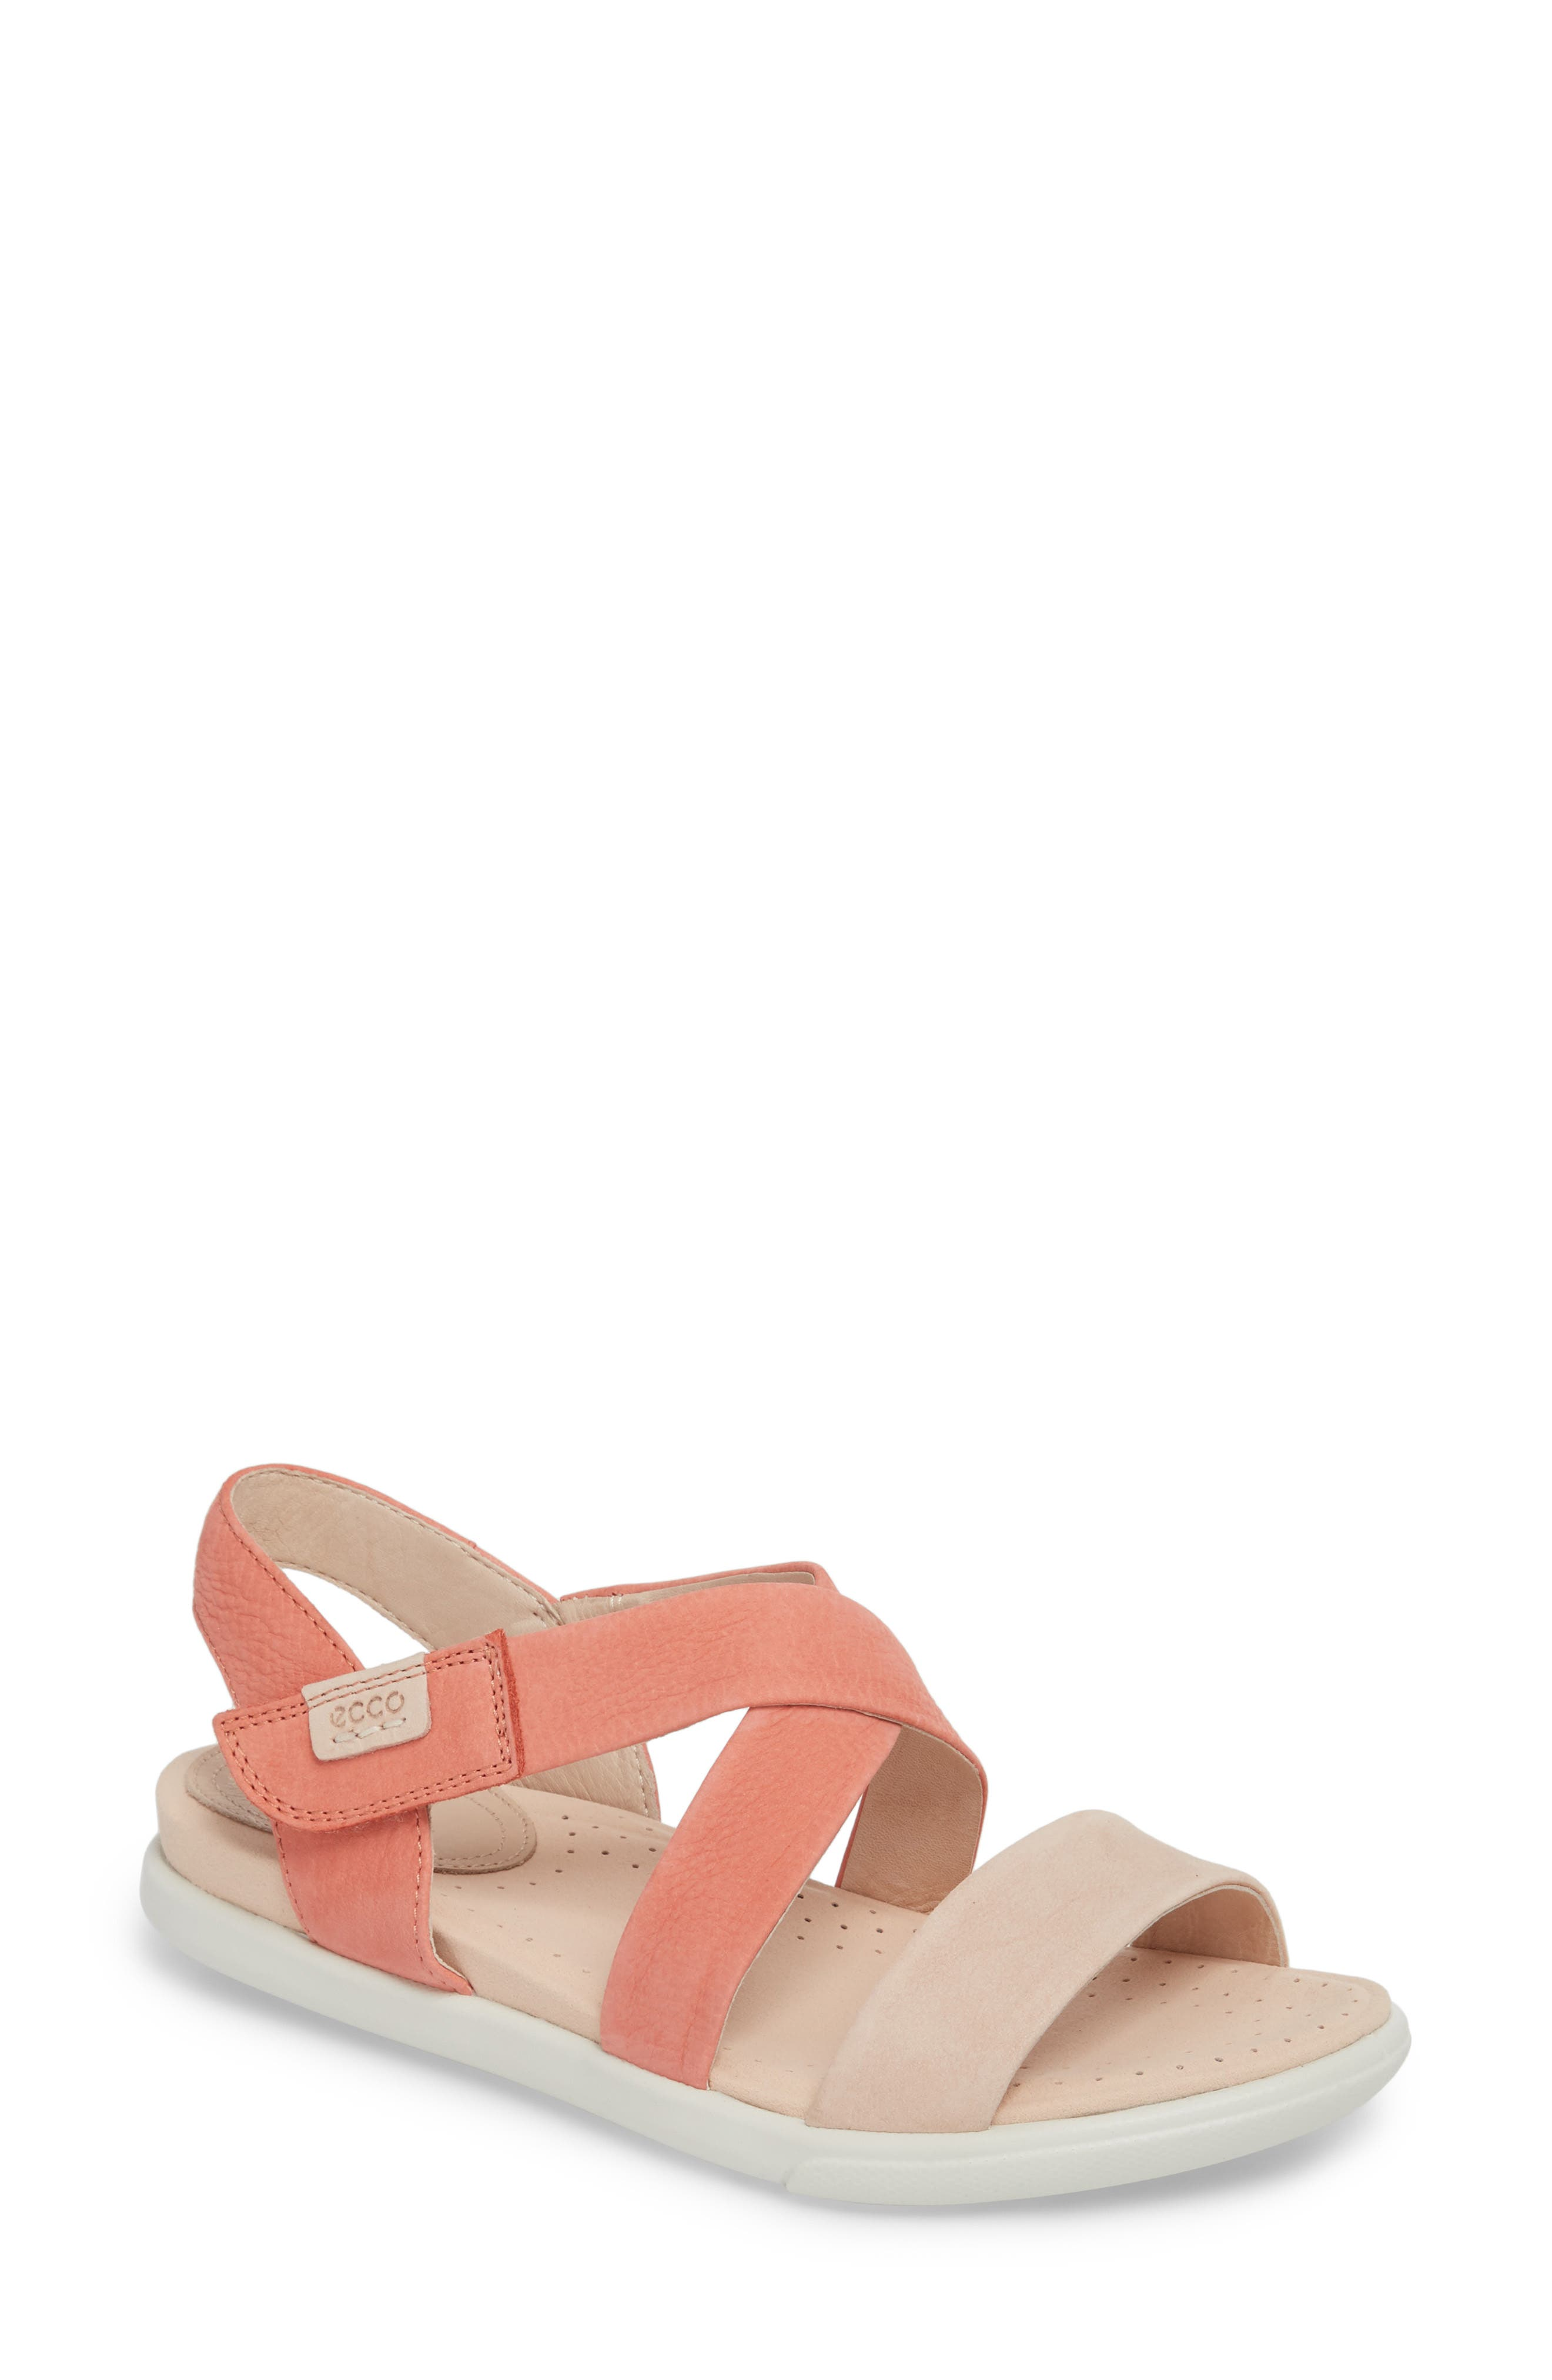 Damara Cross-Strap Sandal,                             Main thumbnail 4, color,